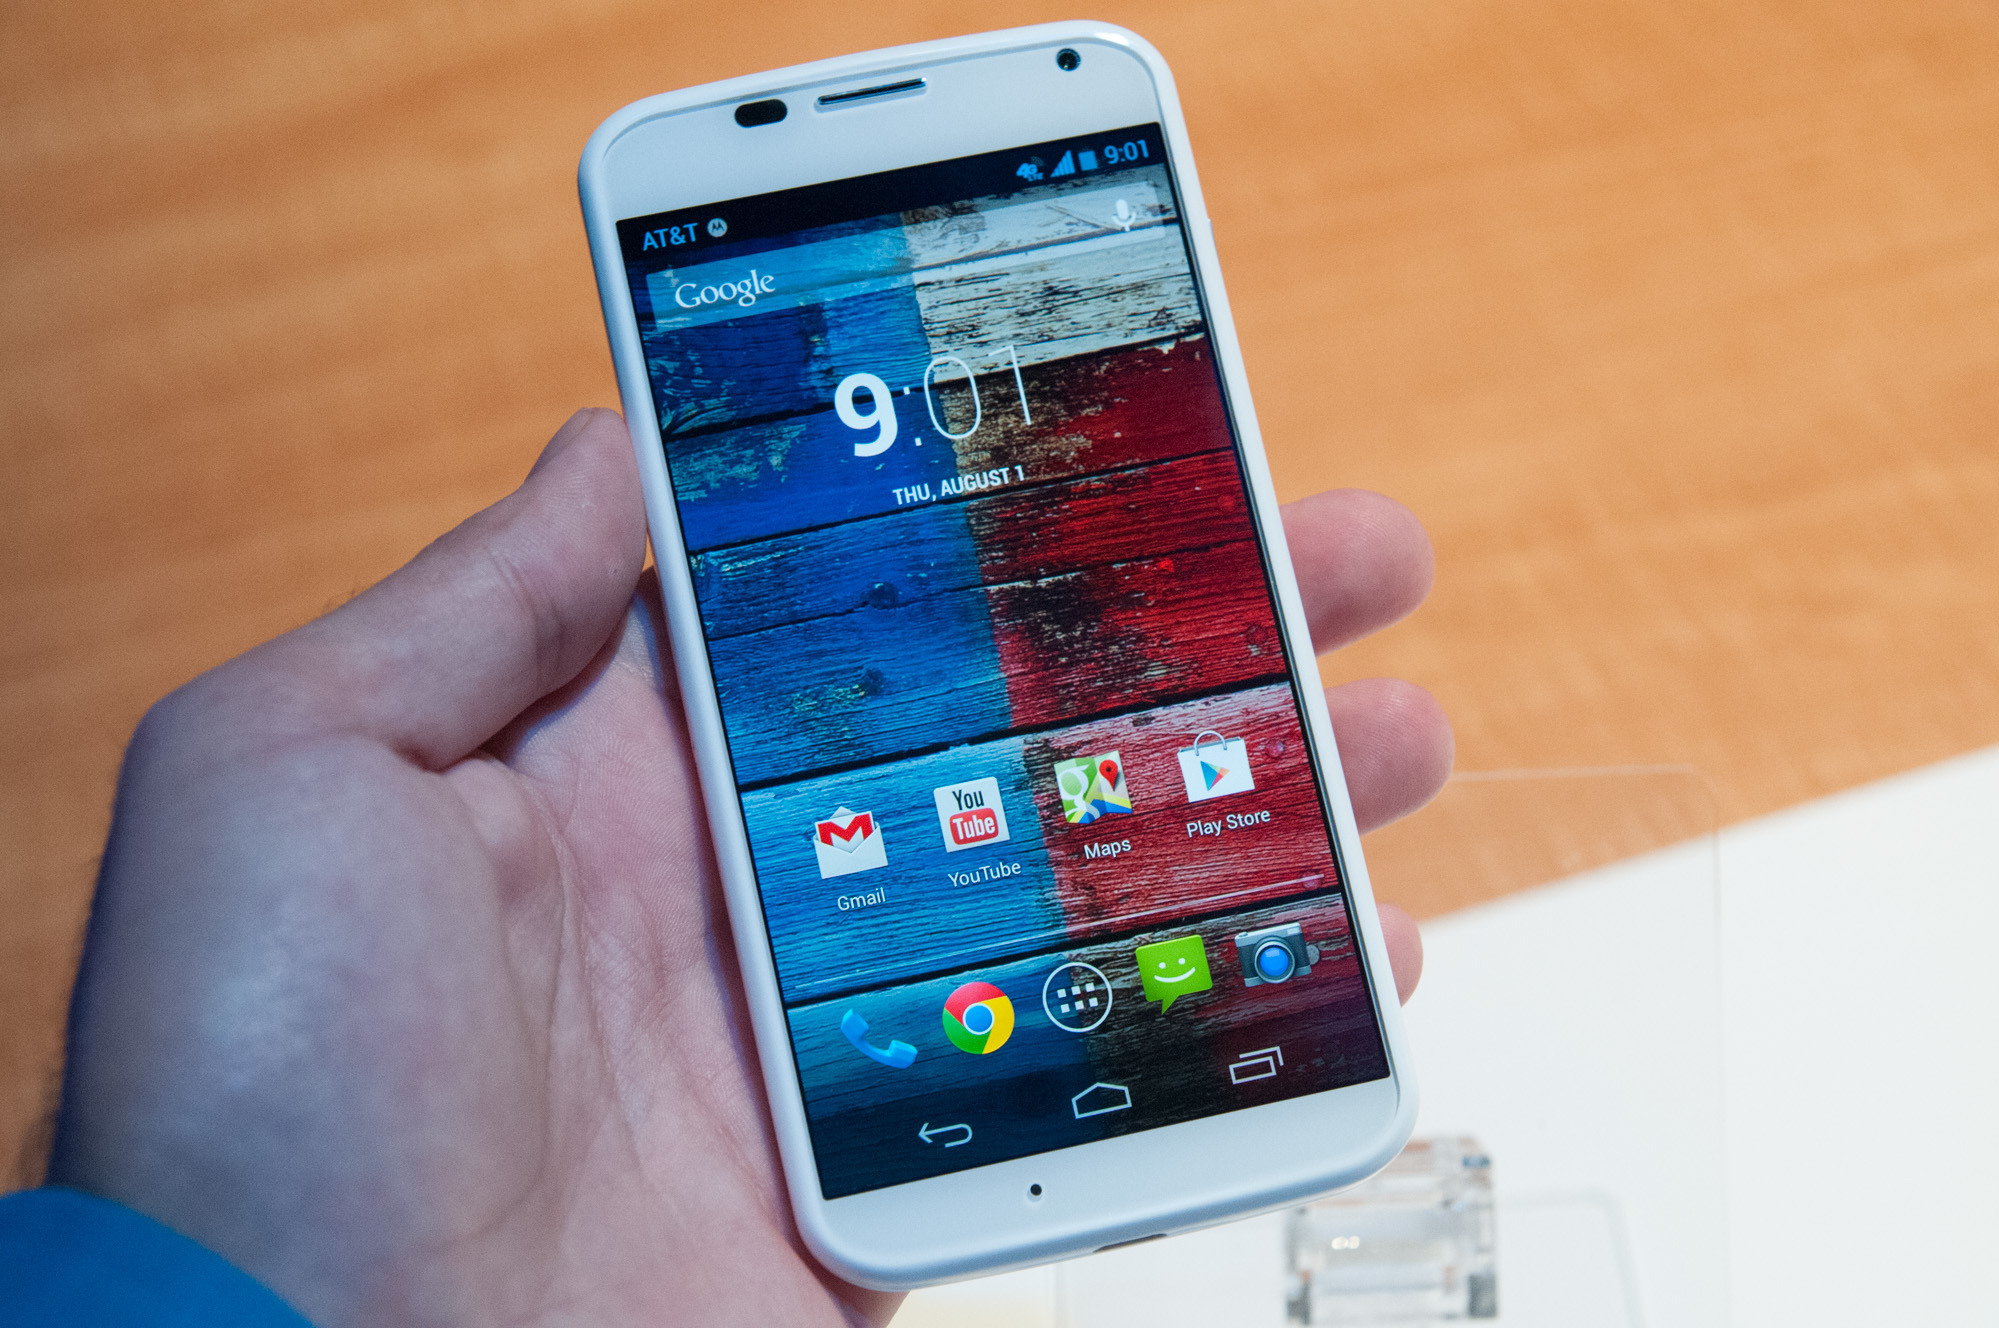 AnandTech | A Quick Look at the Moto X - Motorola's New Flagship